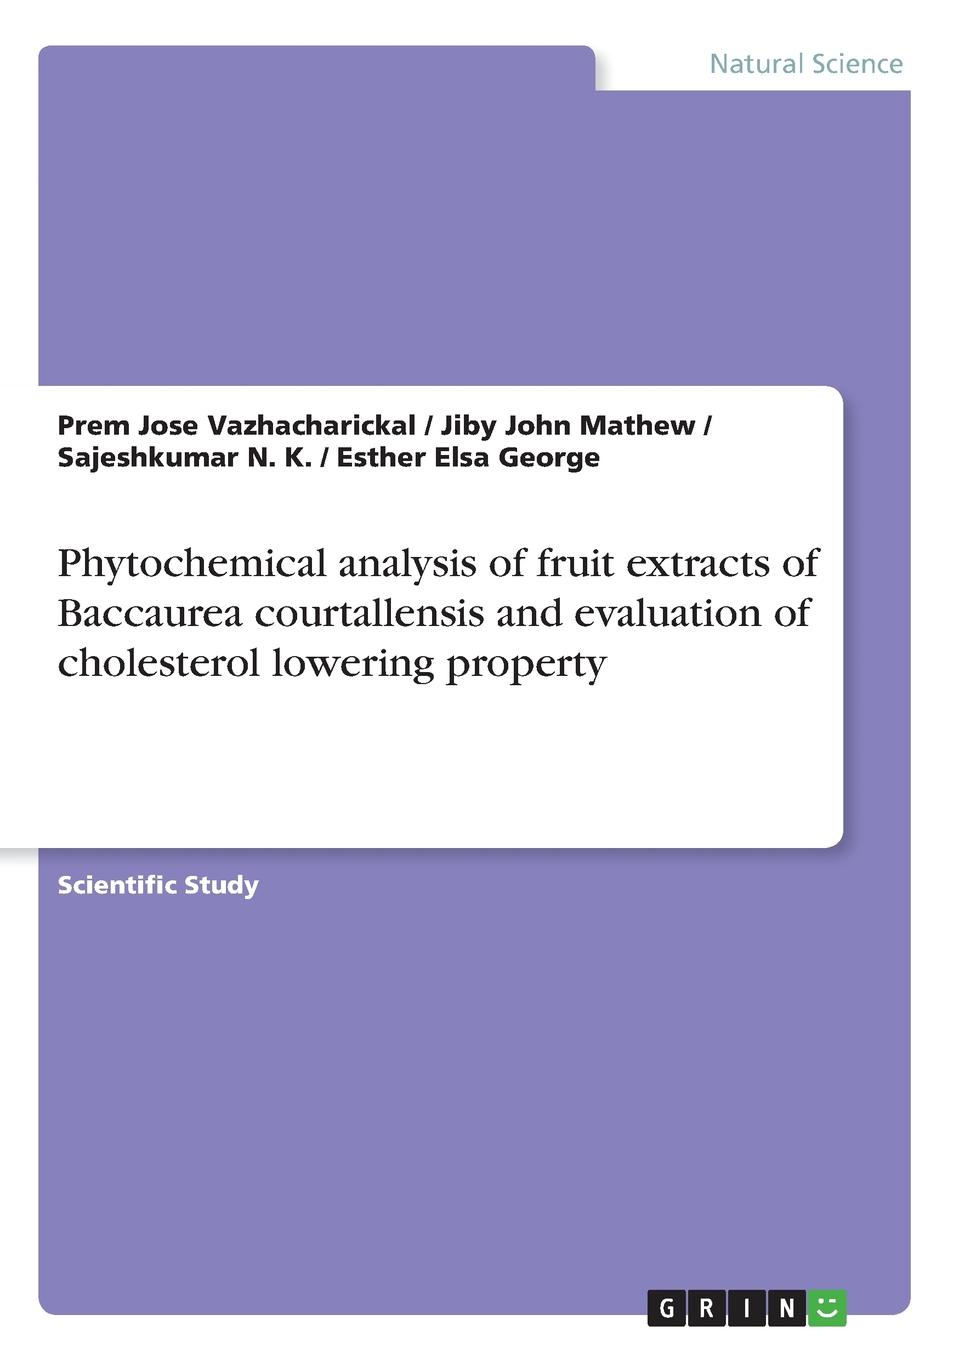 Jiby John Mathew, Prem Jose Vazhacharickal, Sajeshkumar N. K. Phytochemical analysis of fruit extracts of Baccaurea courtallensis and evaluation of cholesterol lowering property jiby john mathew prem jose vazhacharickal sajeshkumar n k the honey apple and its phytochemical analysis